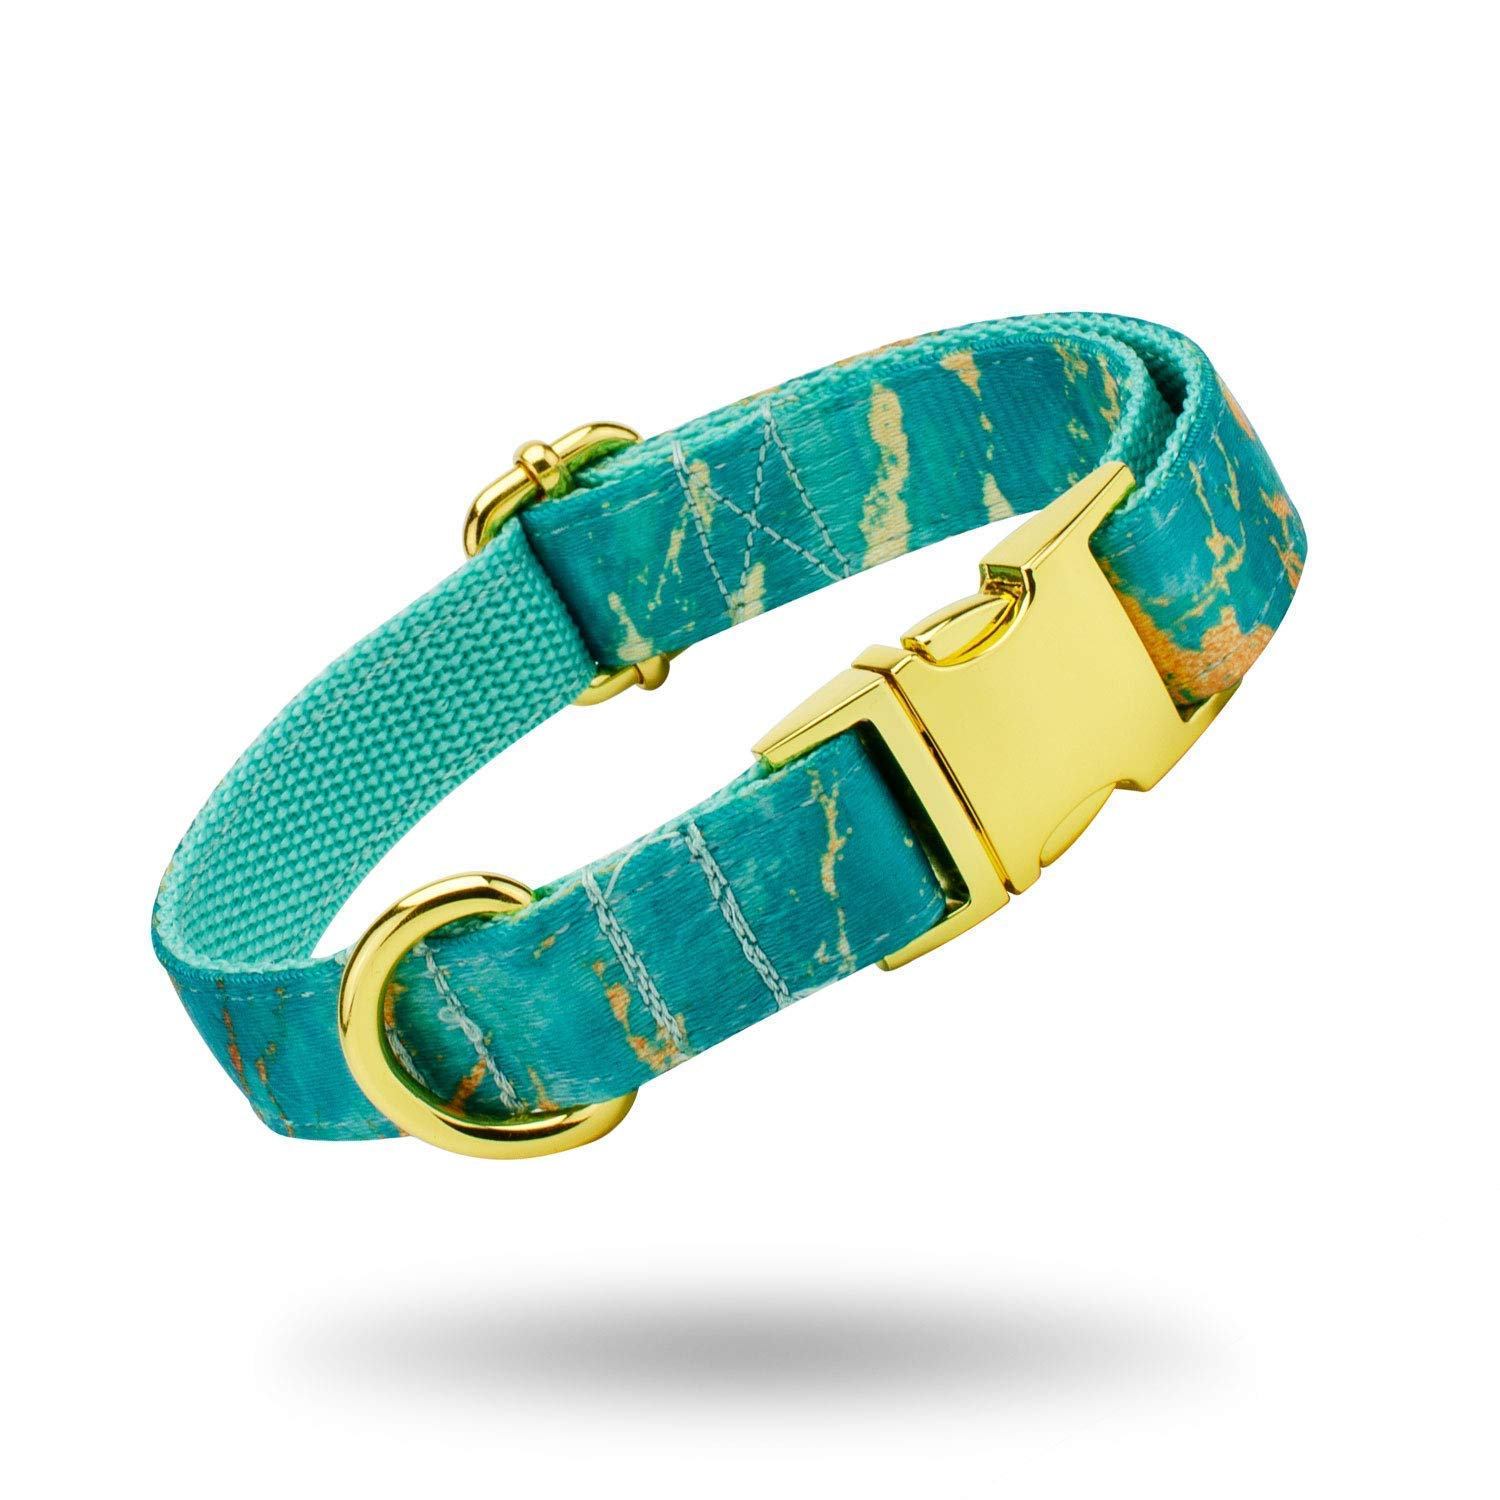 Elegant Turquoise and Gold Marble Print Dog Collar and Leash Set, Adjustable with Gold Metal Quick Release Buckle - Handmade Luxury Collars for X-Small, Medium, Large Dogs